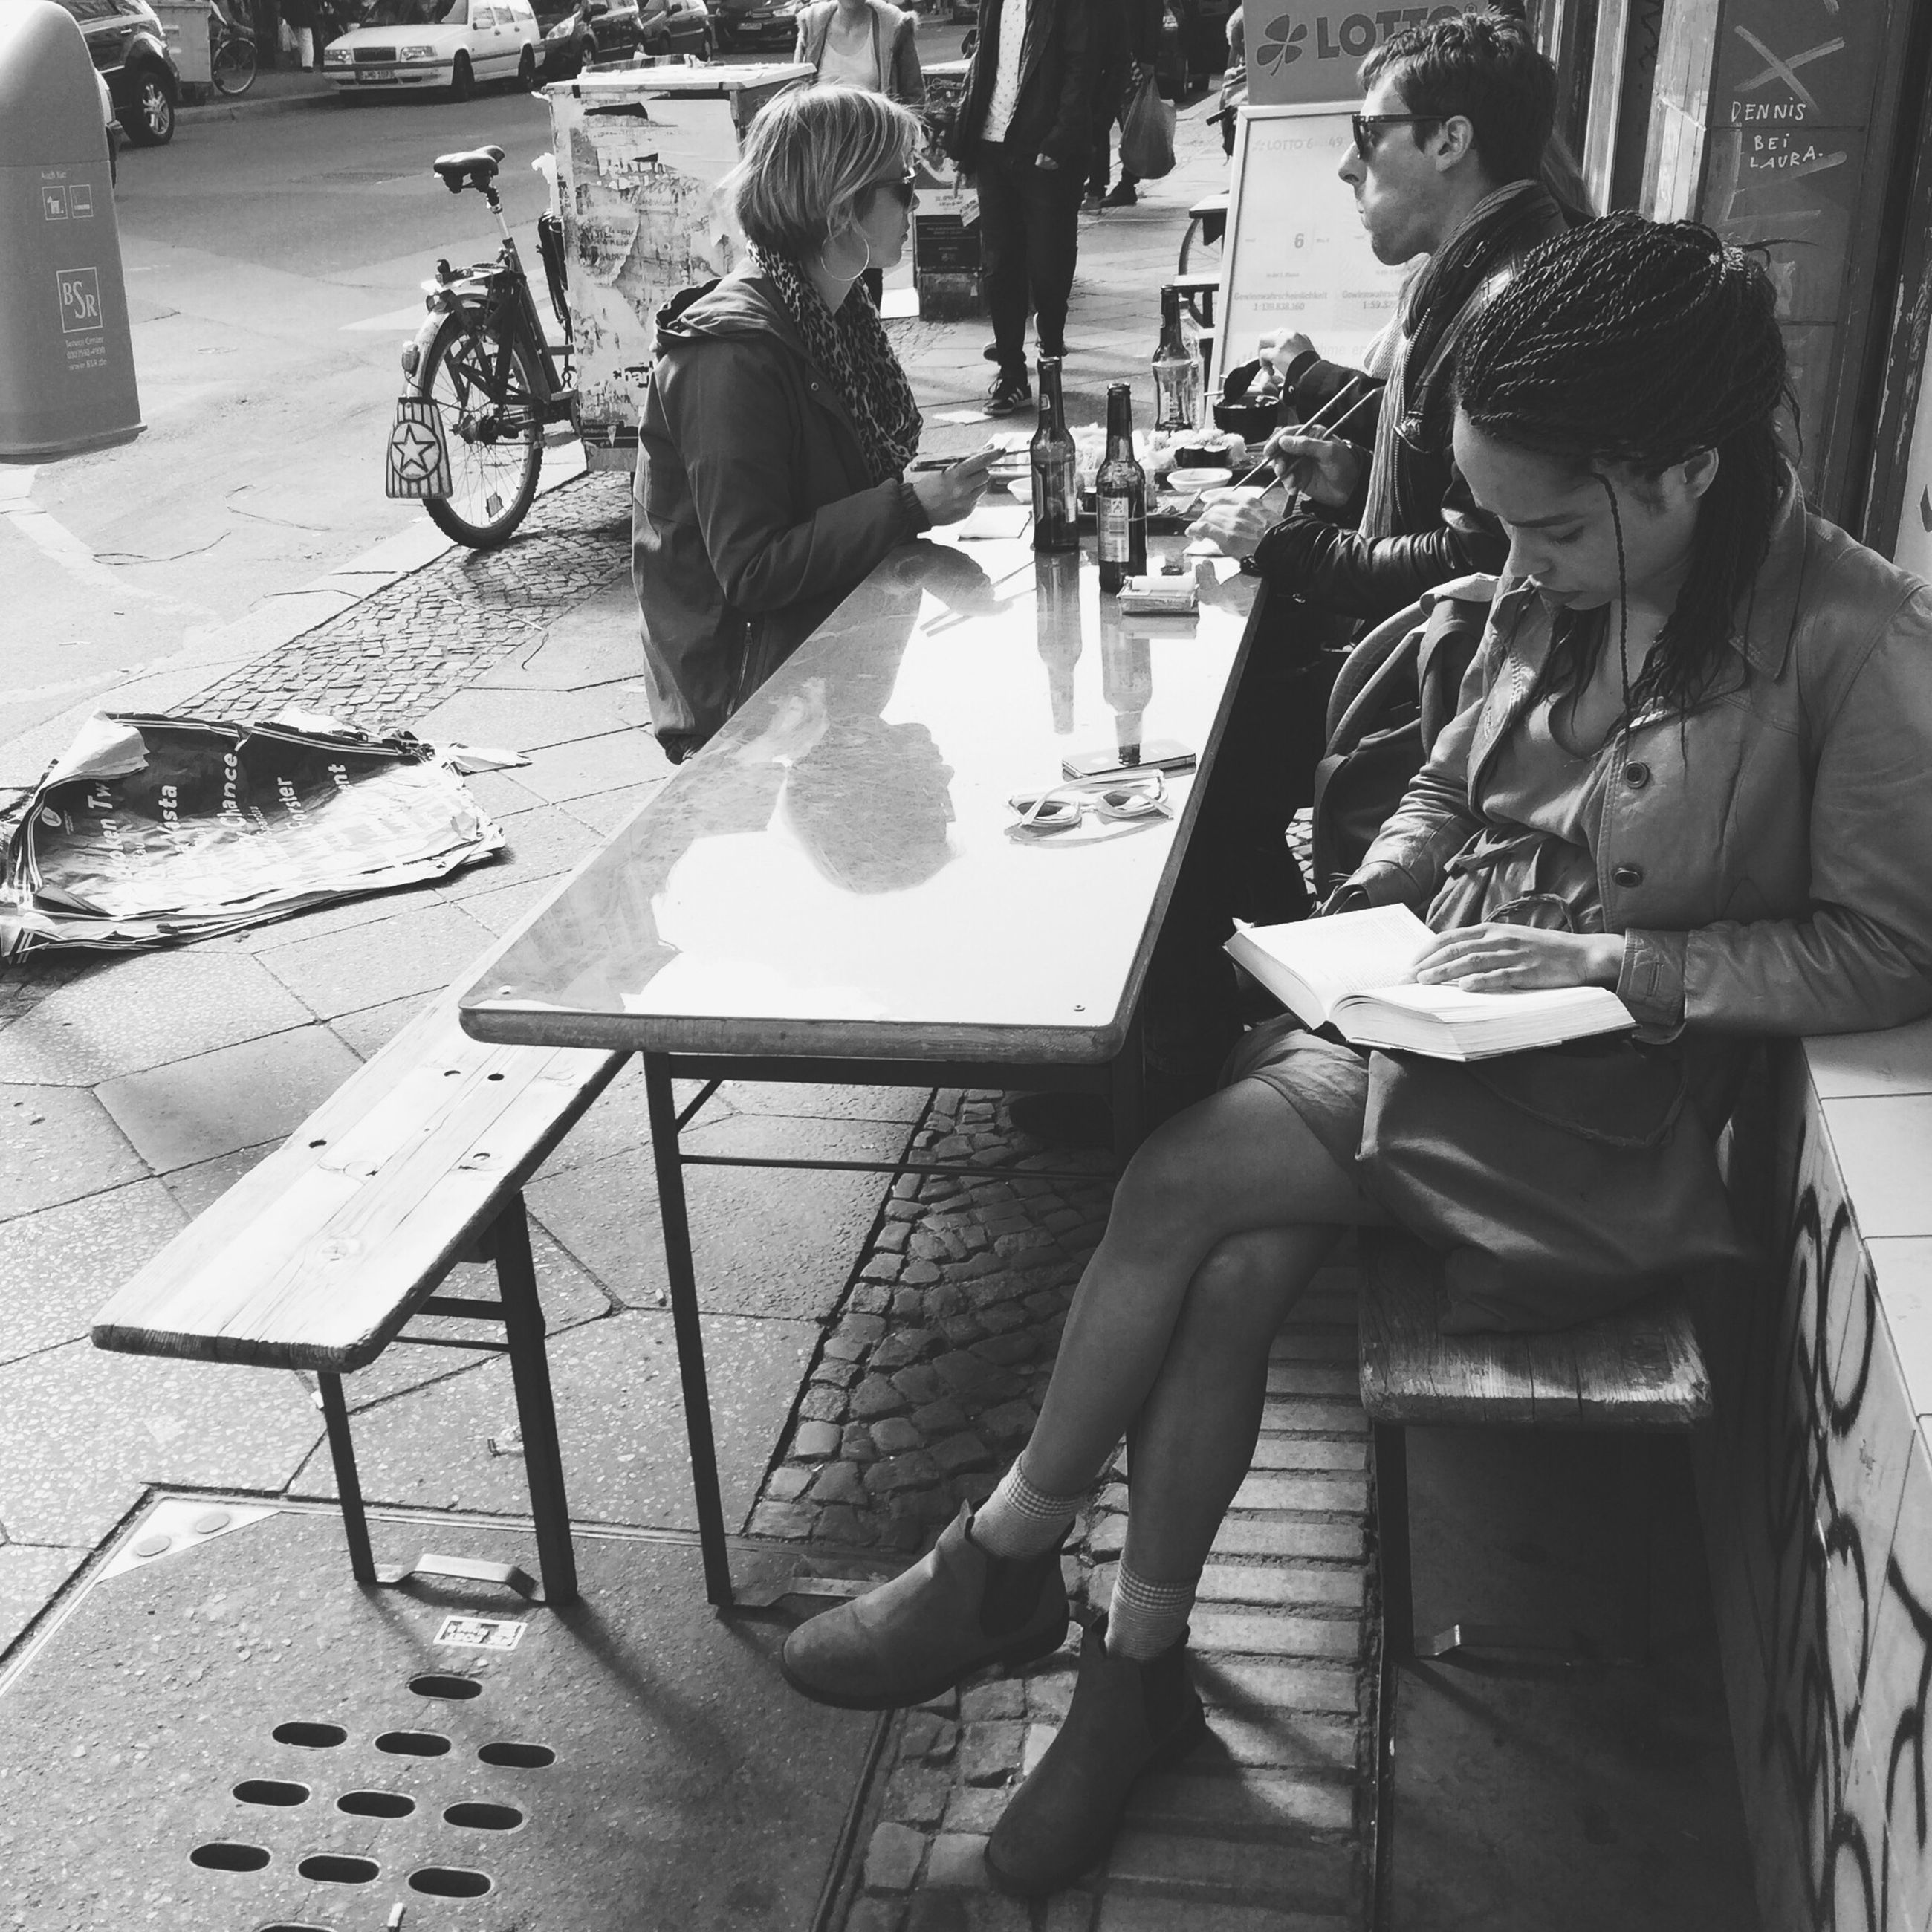 lifestyles, sitting, leisure activity, casual clothing, men, chair, person, street, sidewalk cafe, city, city life, table, incidental people, full length, restaurant, day, cafe